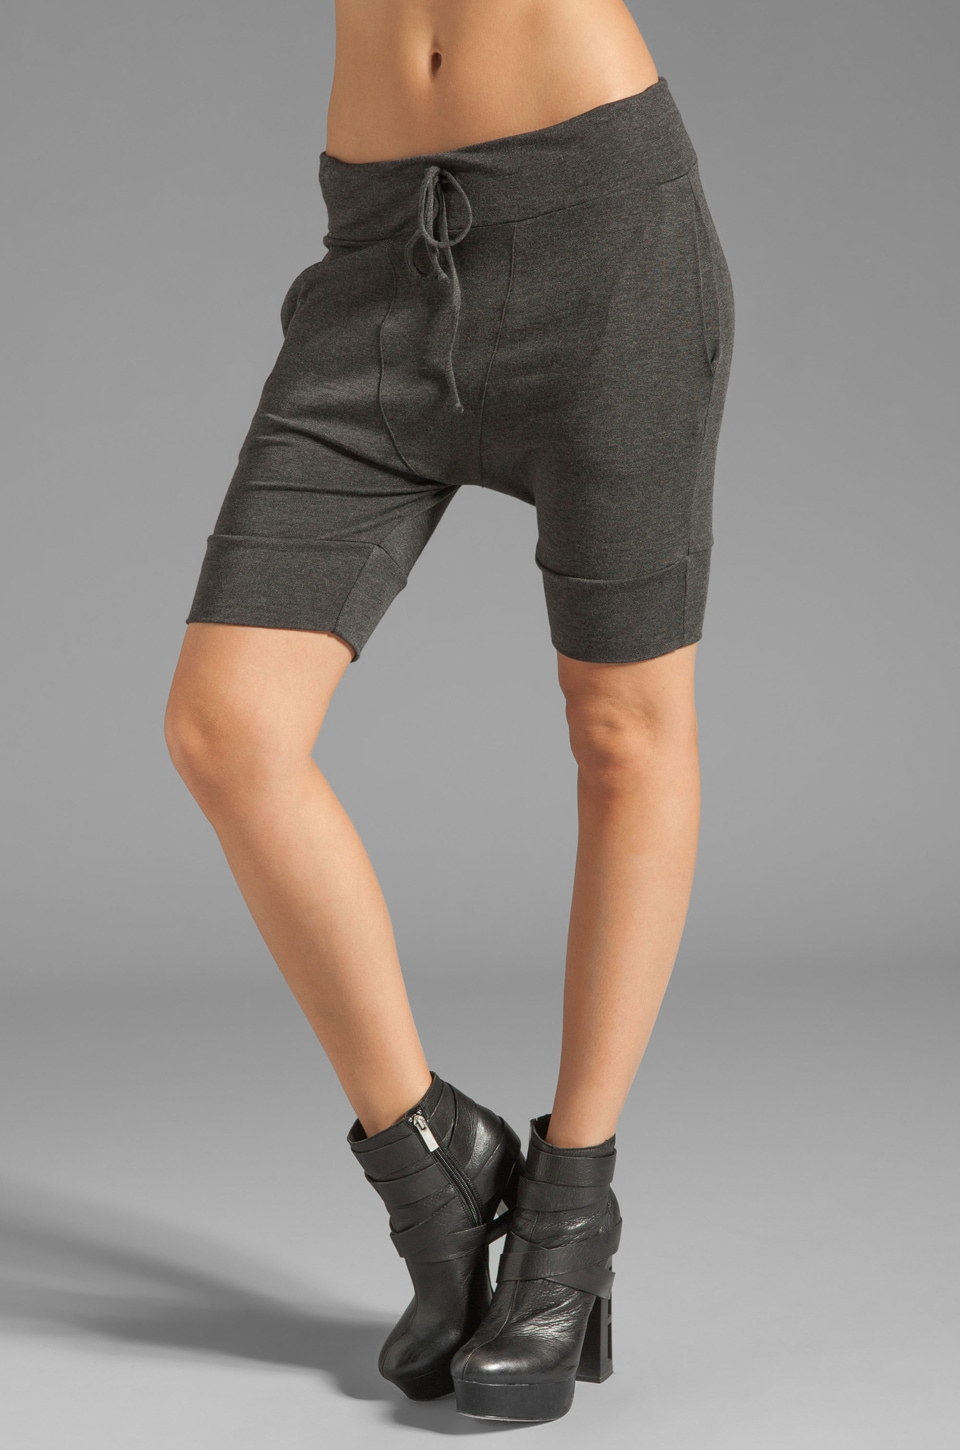 Riller & Fount Ines Jersey Lounge Shorts in Stud